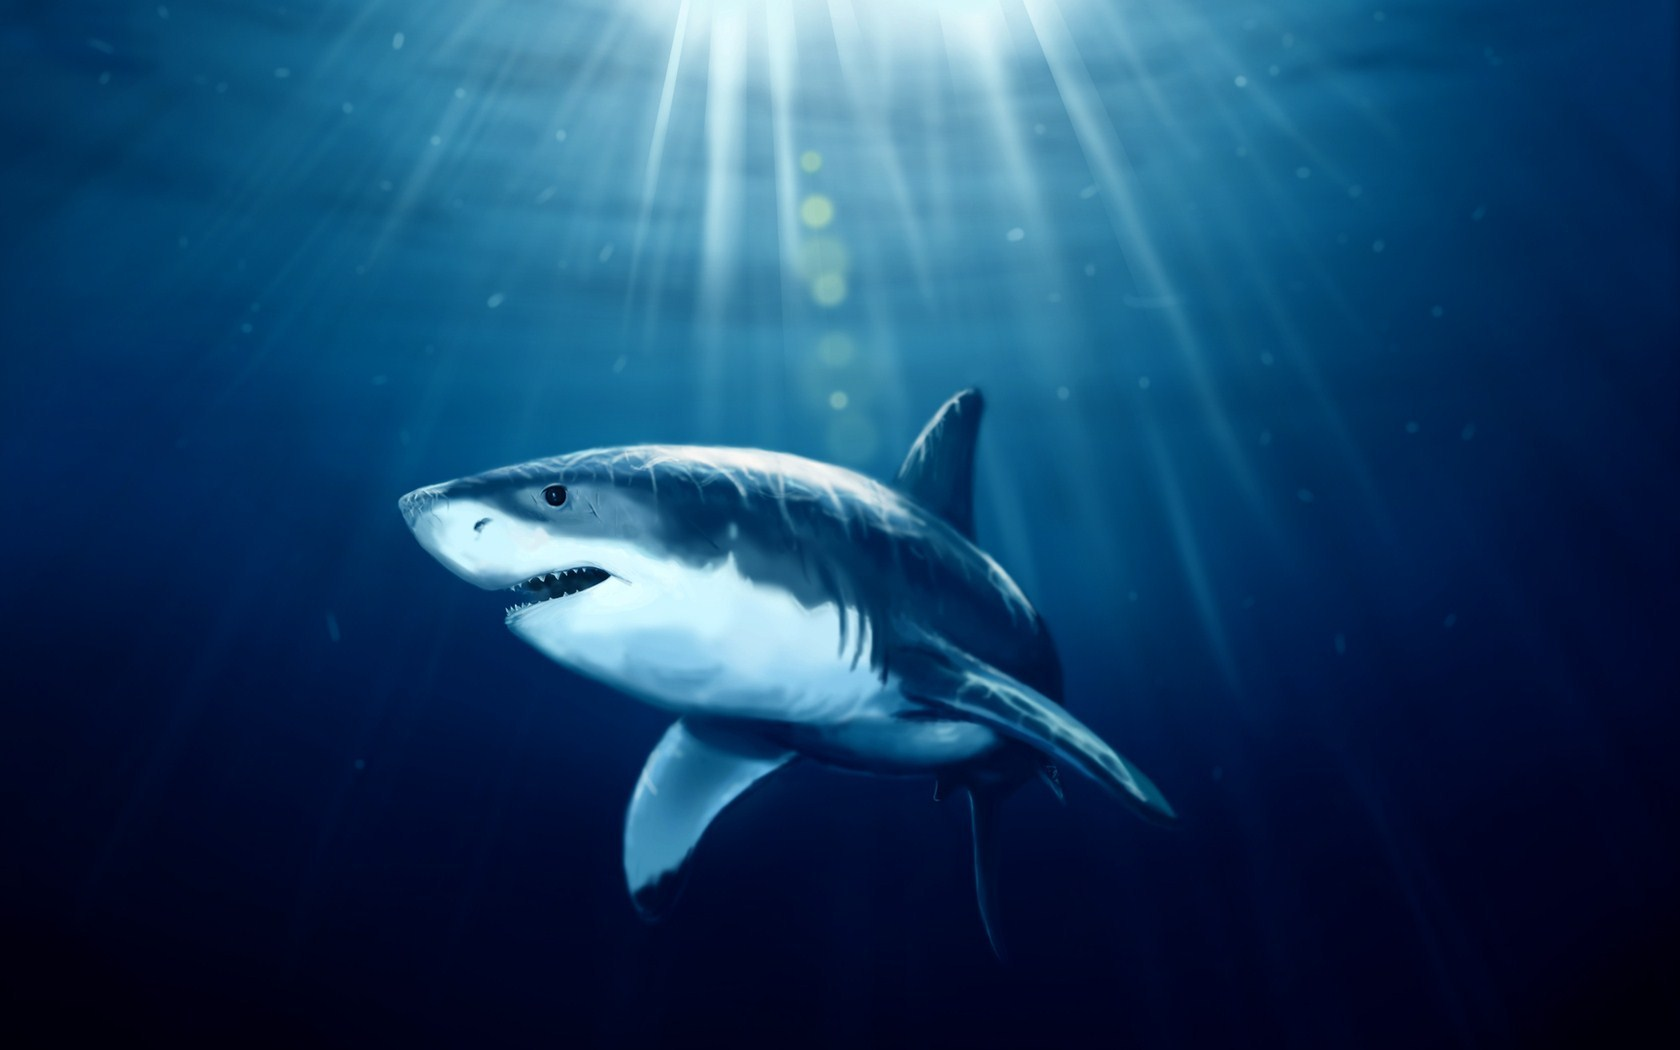 Shark Fish Underwater Art HD Wallpaper